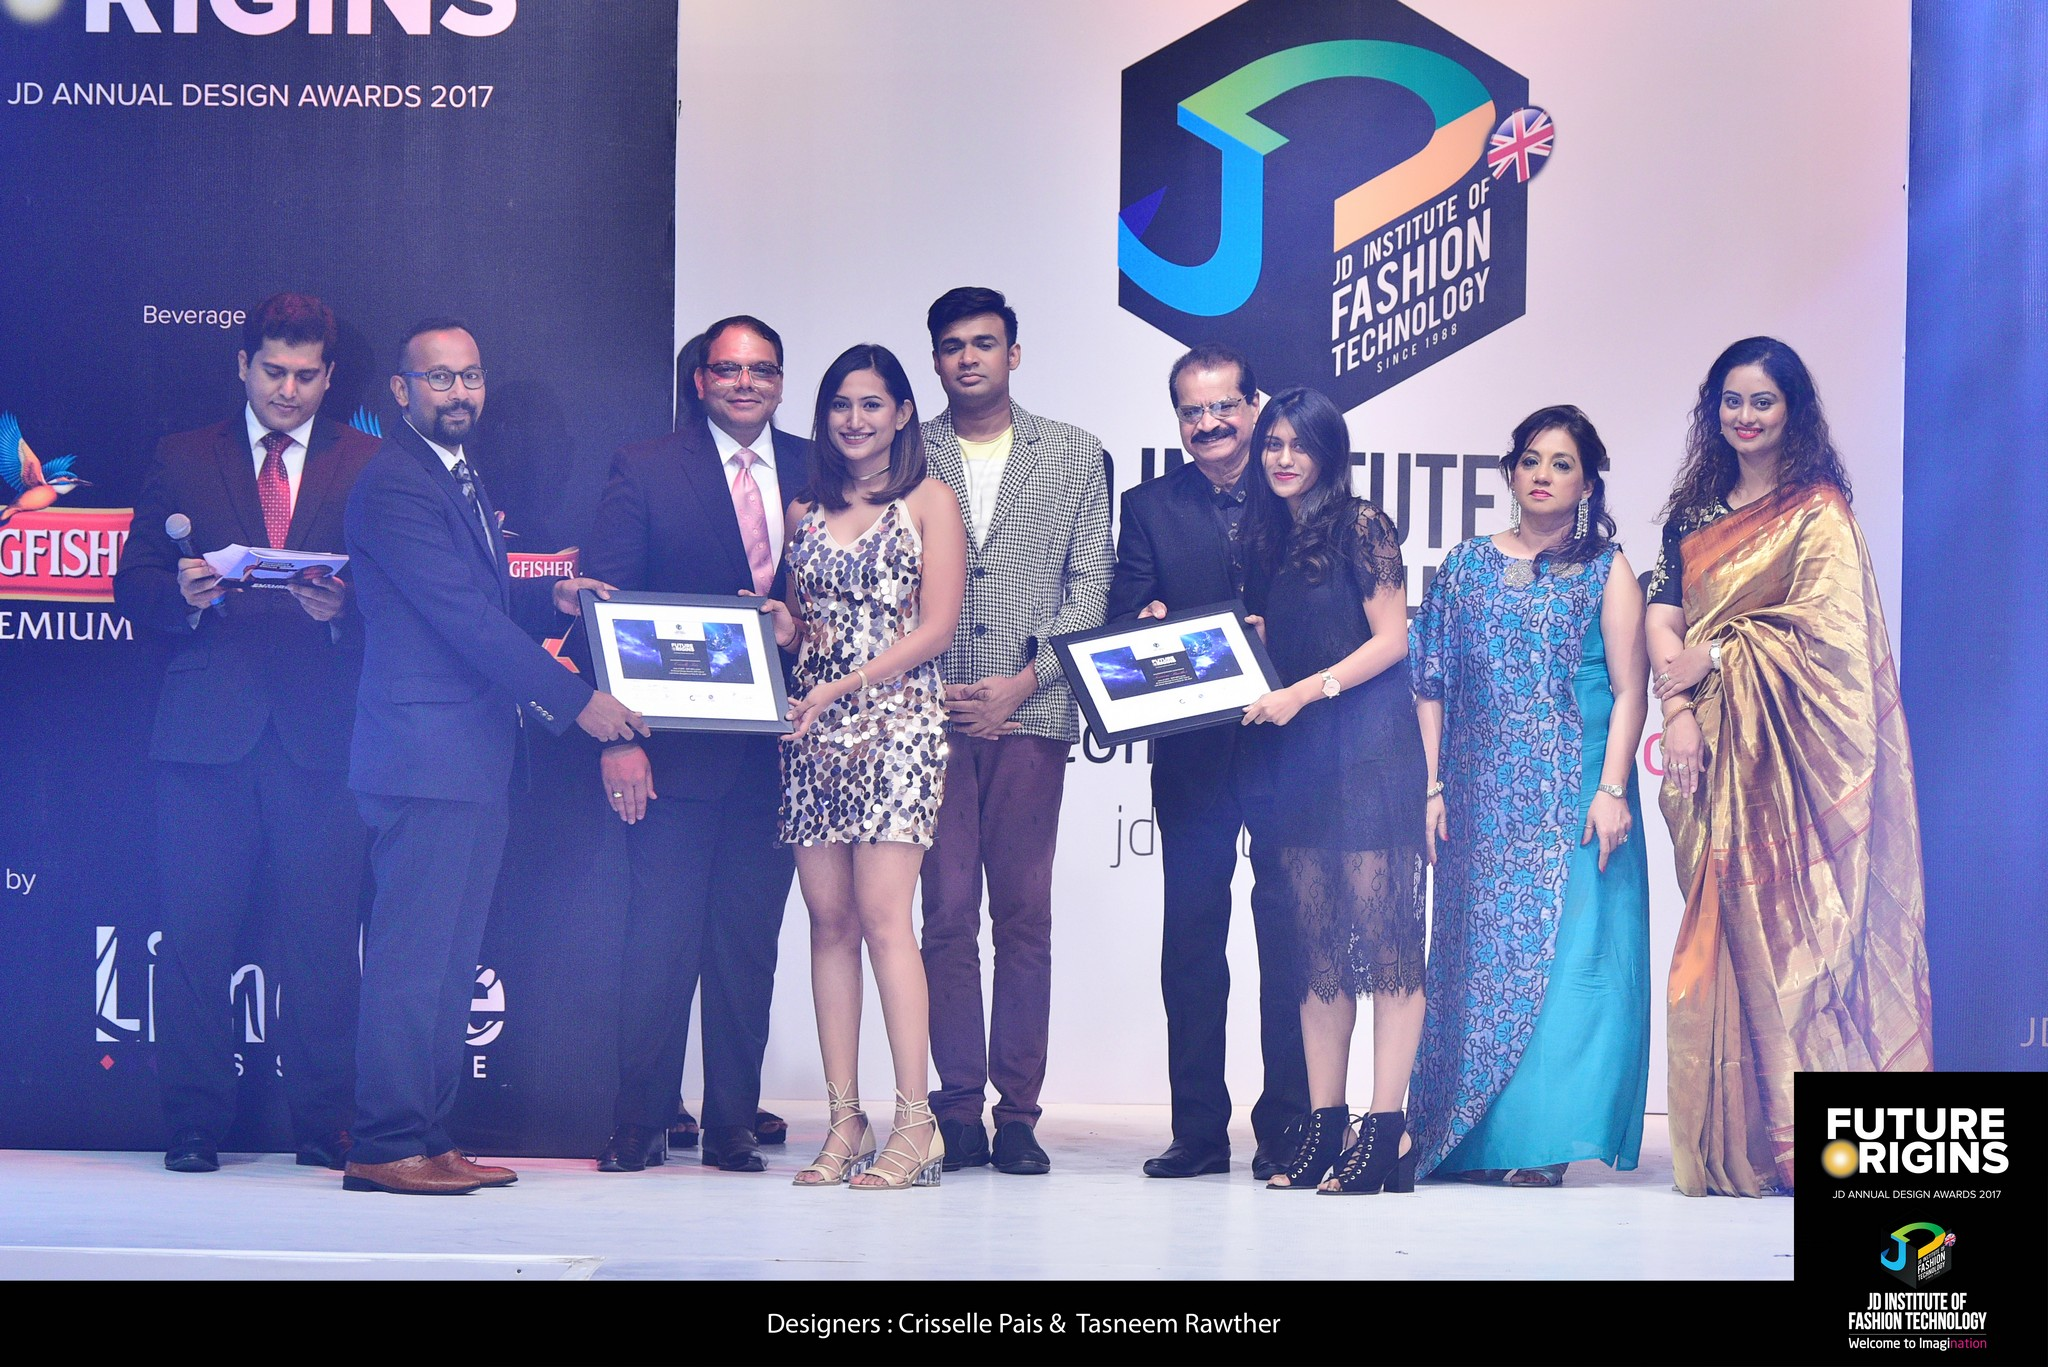 Surreal Tranquility - Future Origin - JD Annual Design Awards 2017 | Photography : Jerin Nath surreal tranquility Surreal Tranquility – Future Origin – JD Annual Design Awards 2017 Surreal Tranquility Future Origin JD Annual Design Awards 2017 1